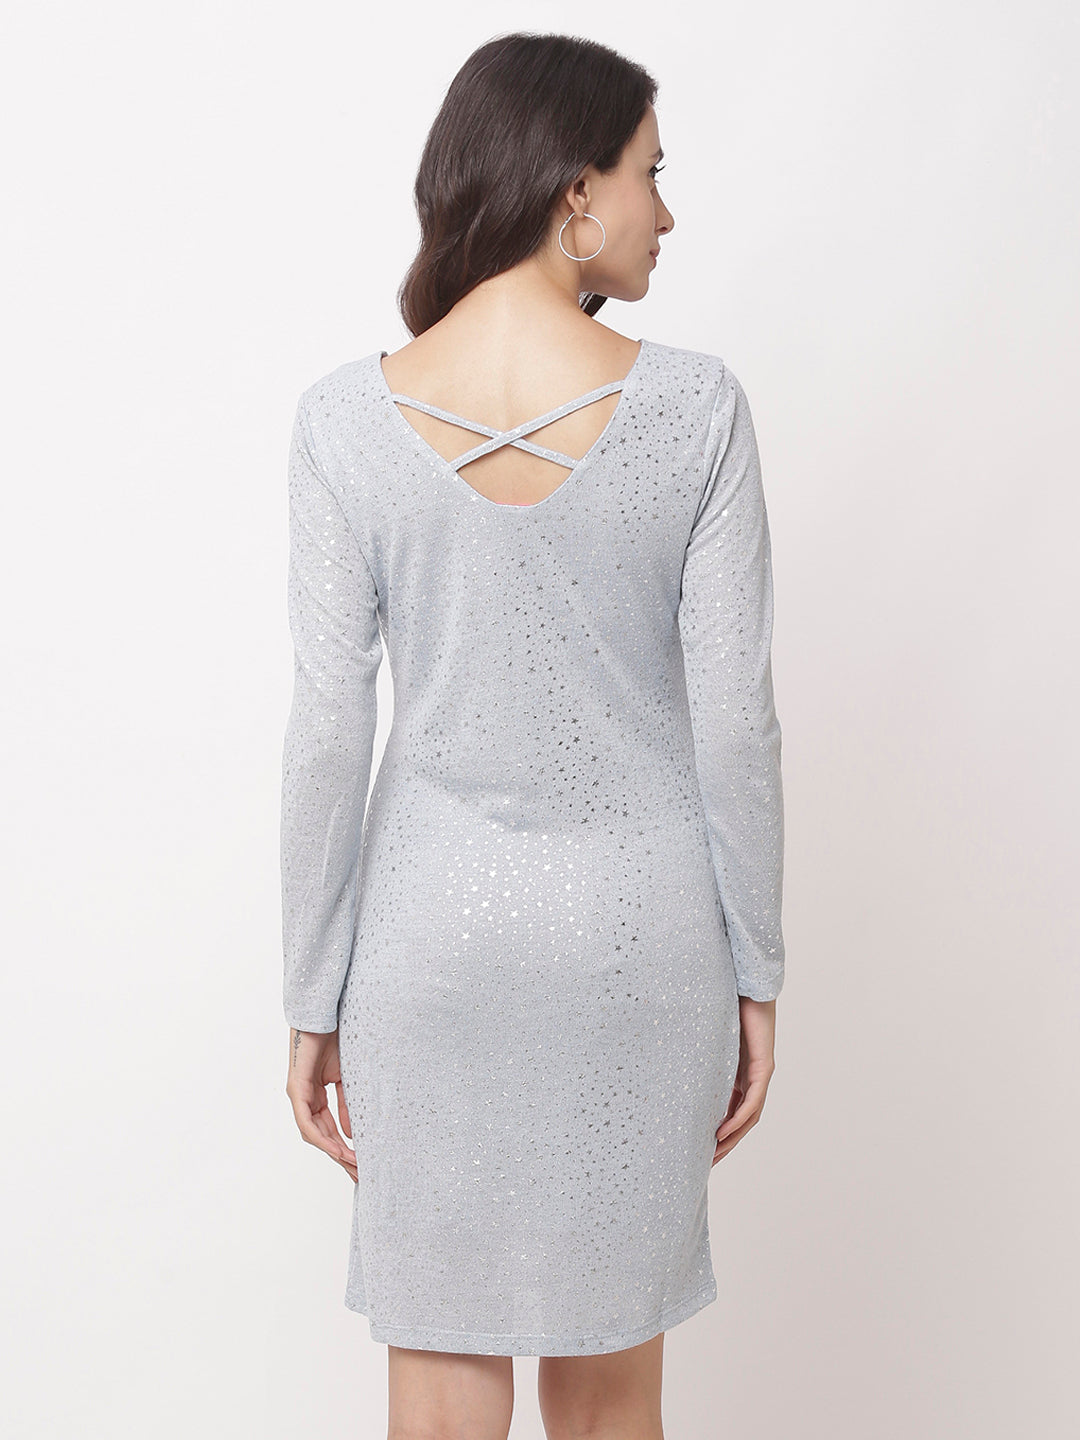 Globus Grey Embellished Casual Dress-2